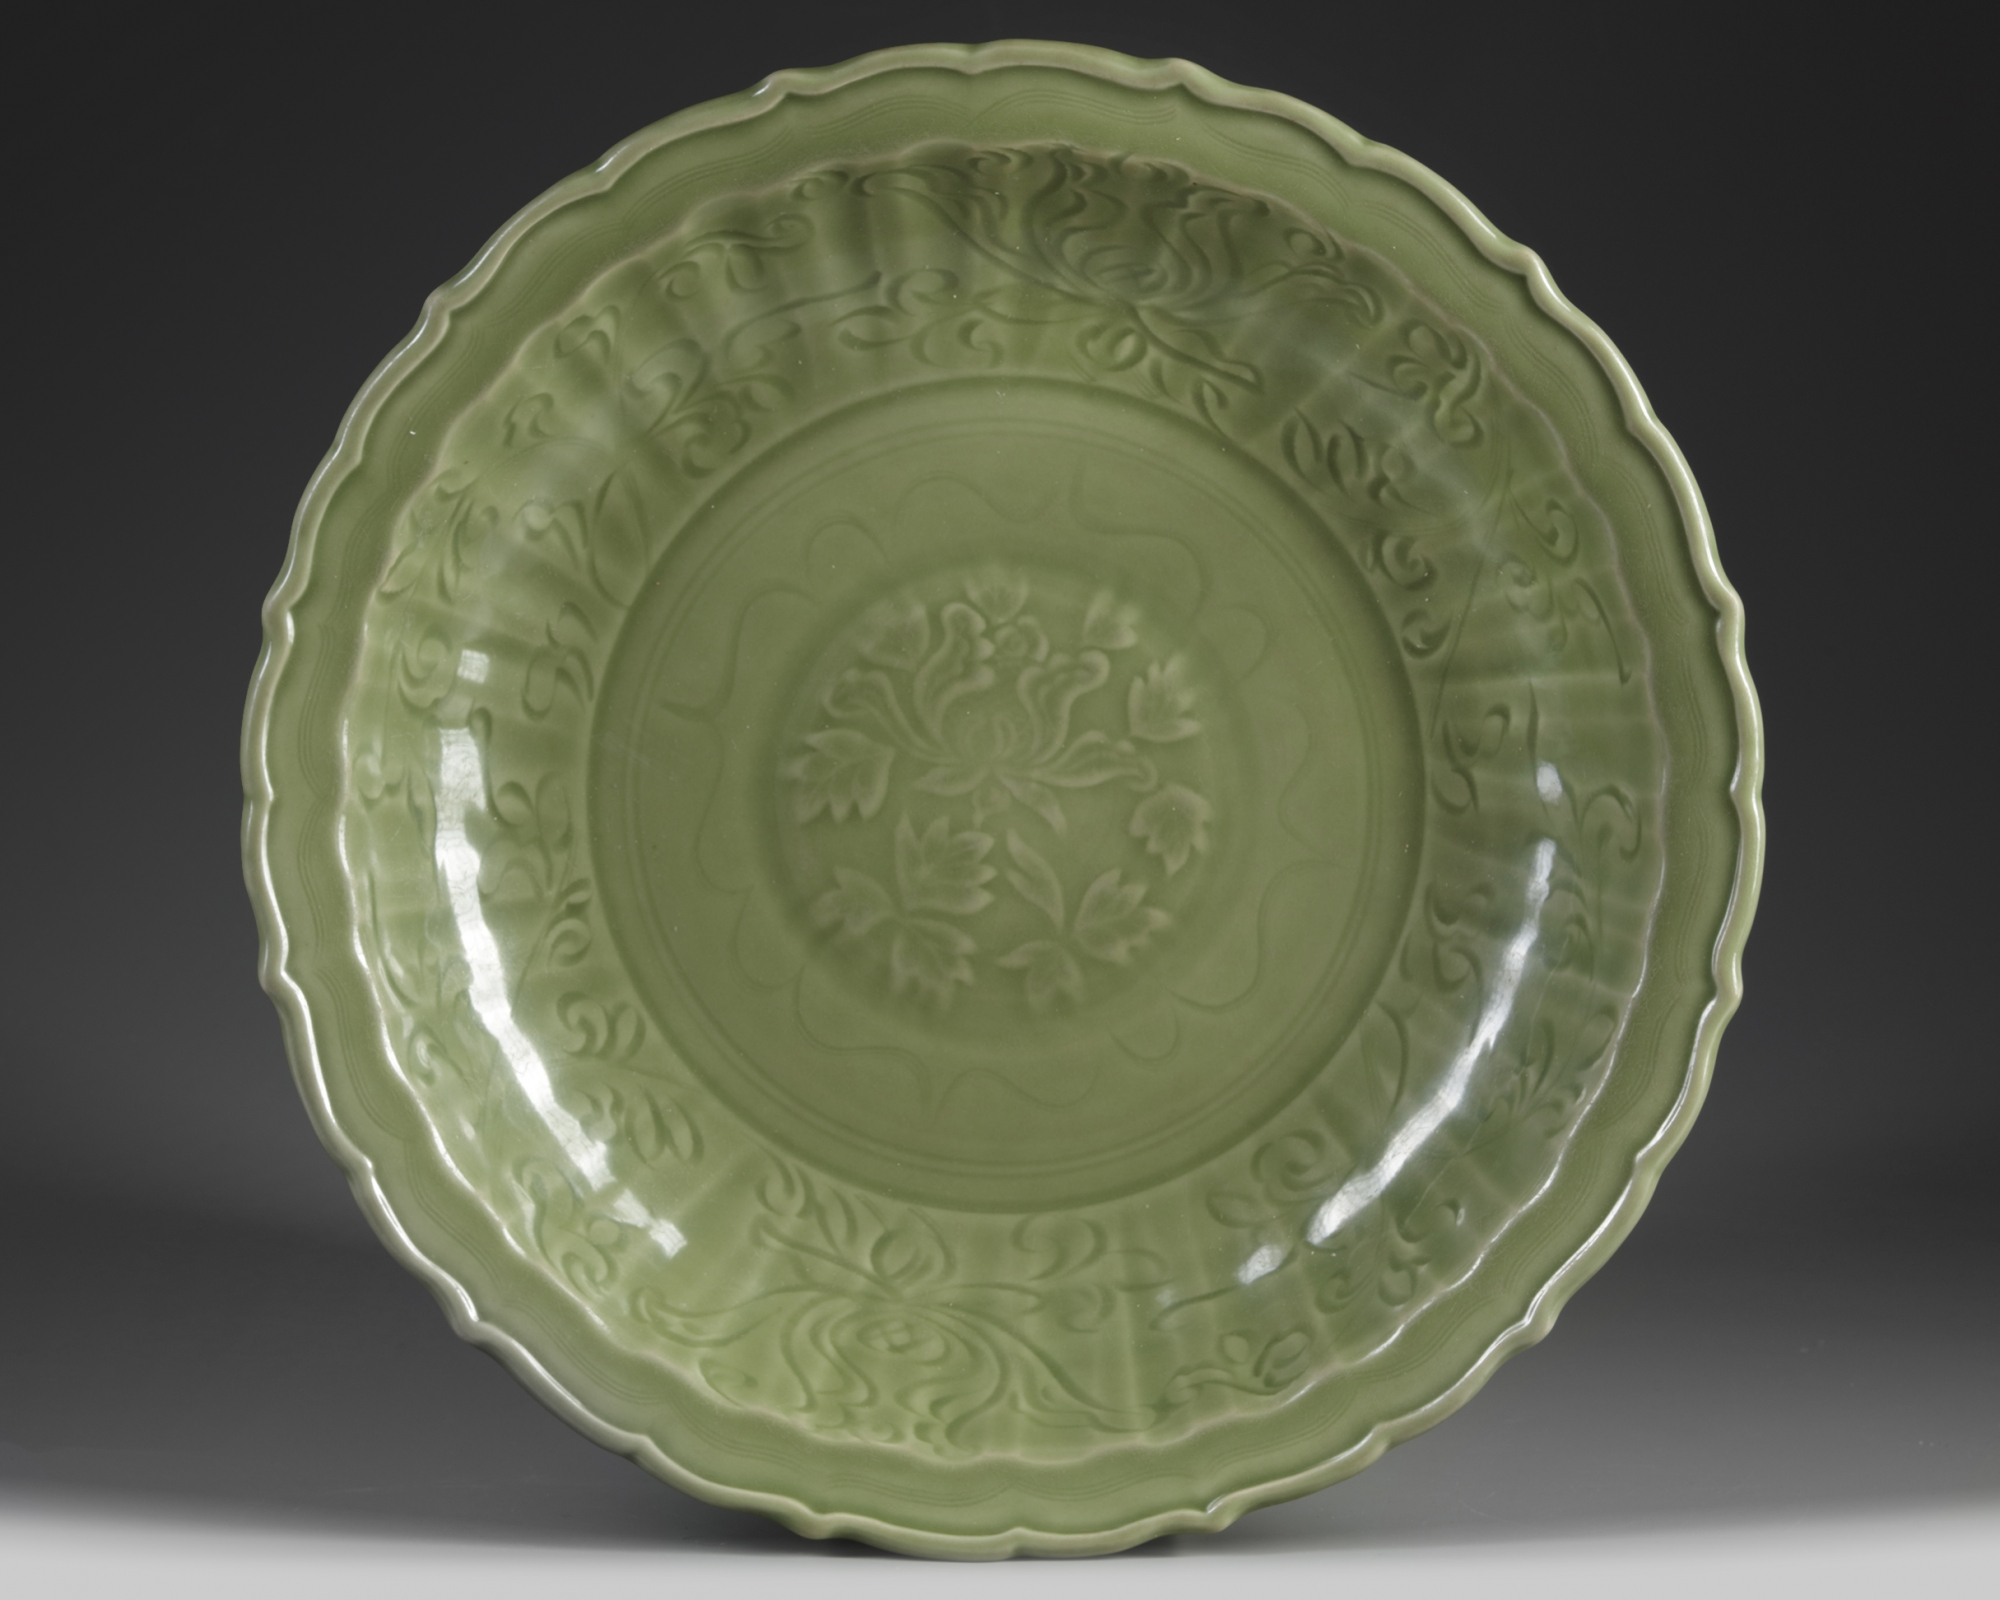 Lot 57 - A Chinese Longquan-celadon-glazed 'lotus' barbed-rim charger